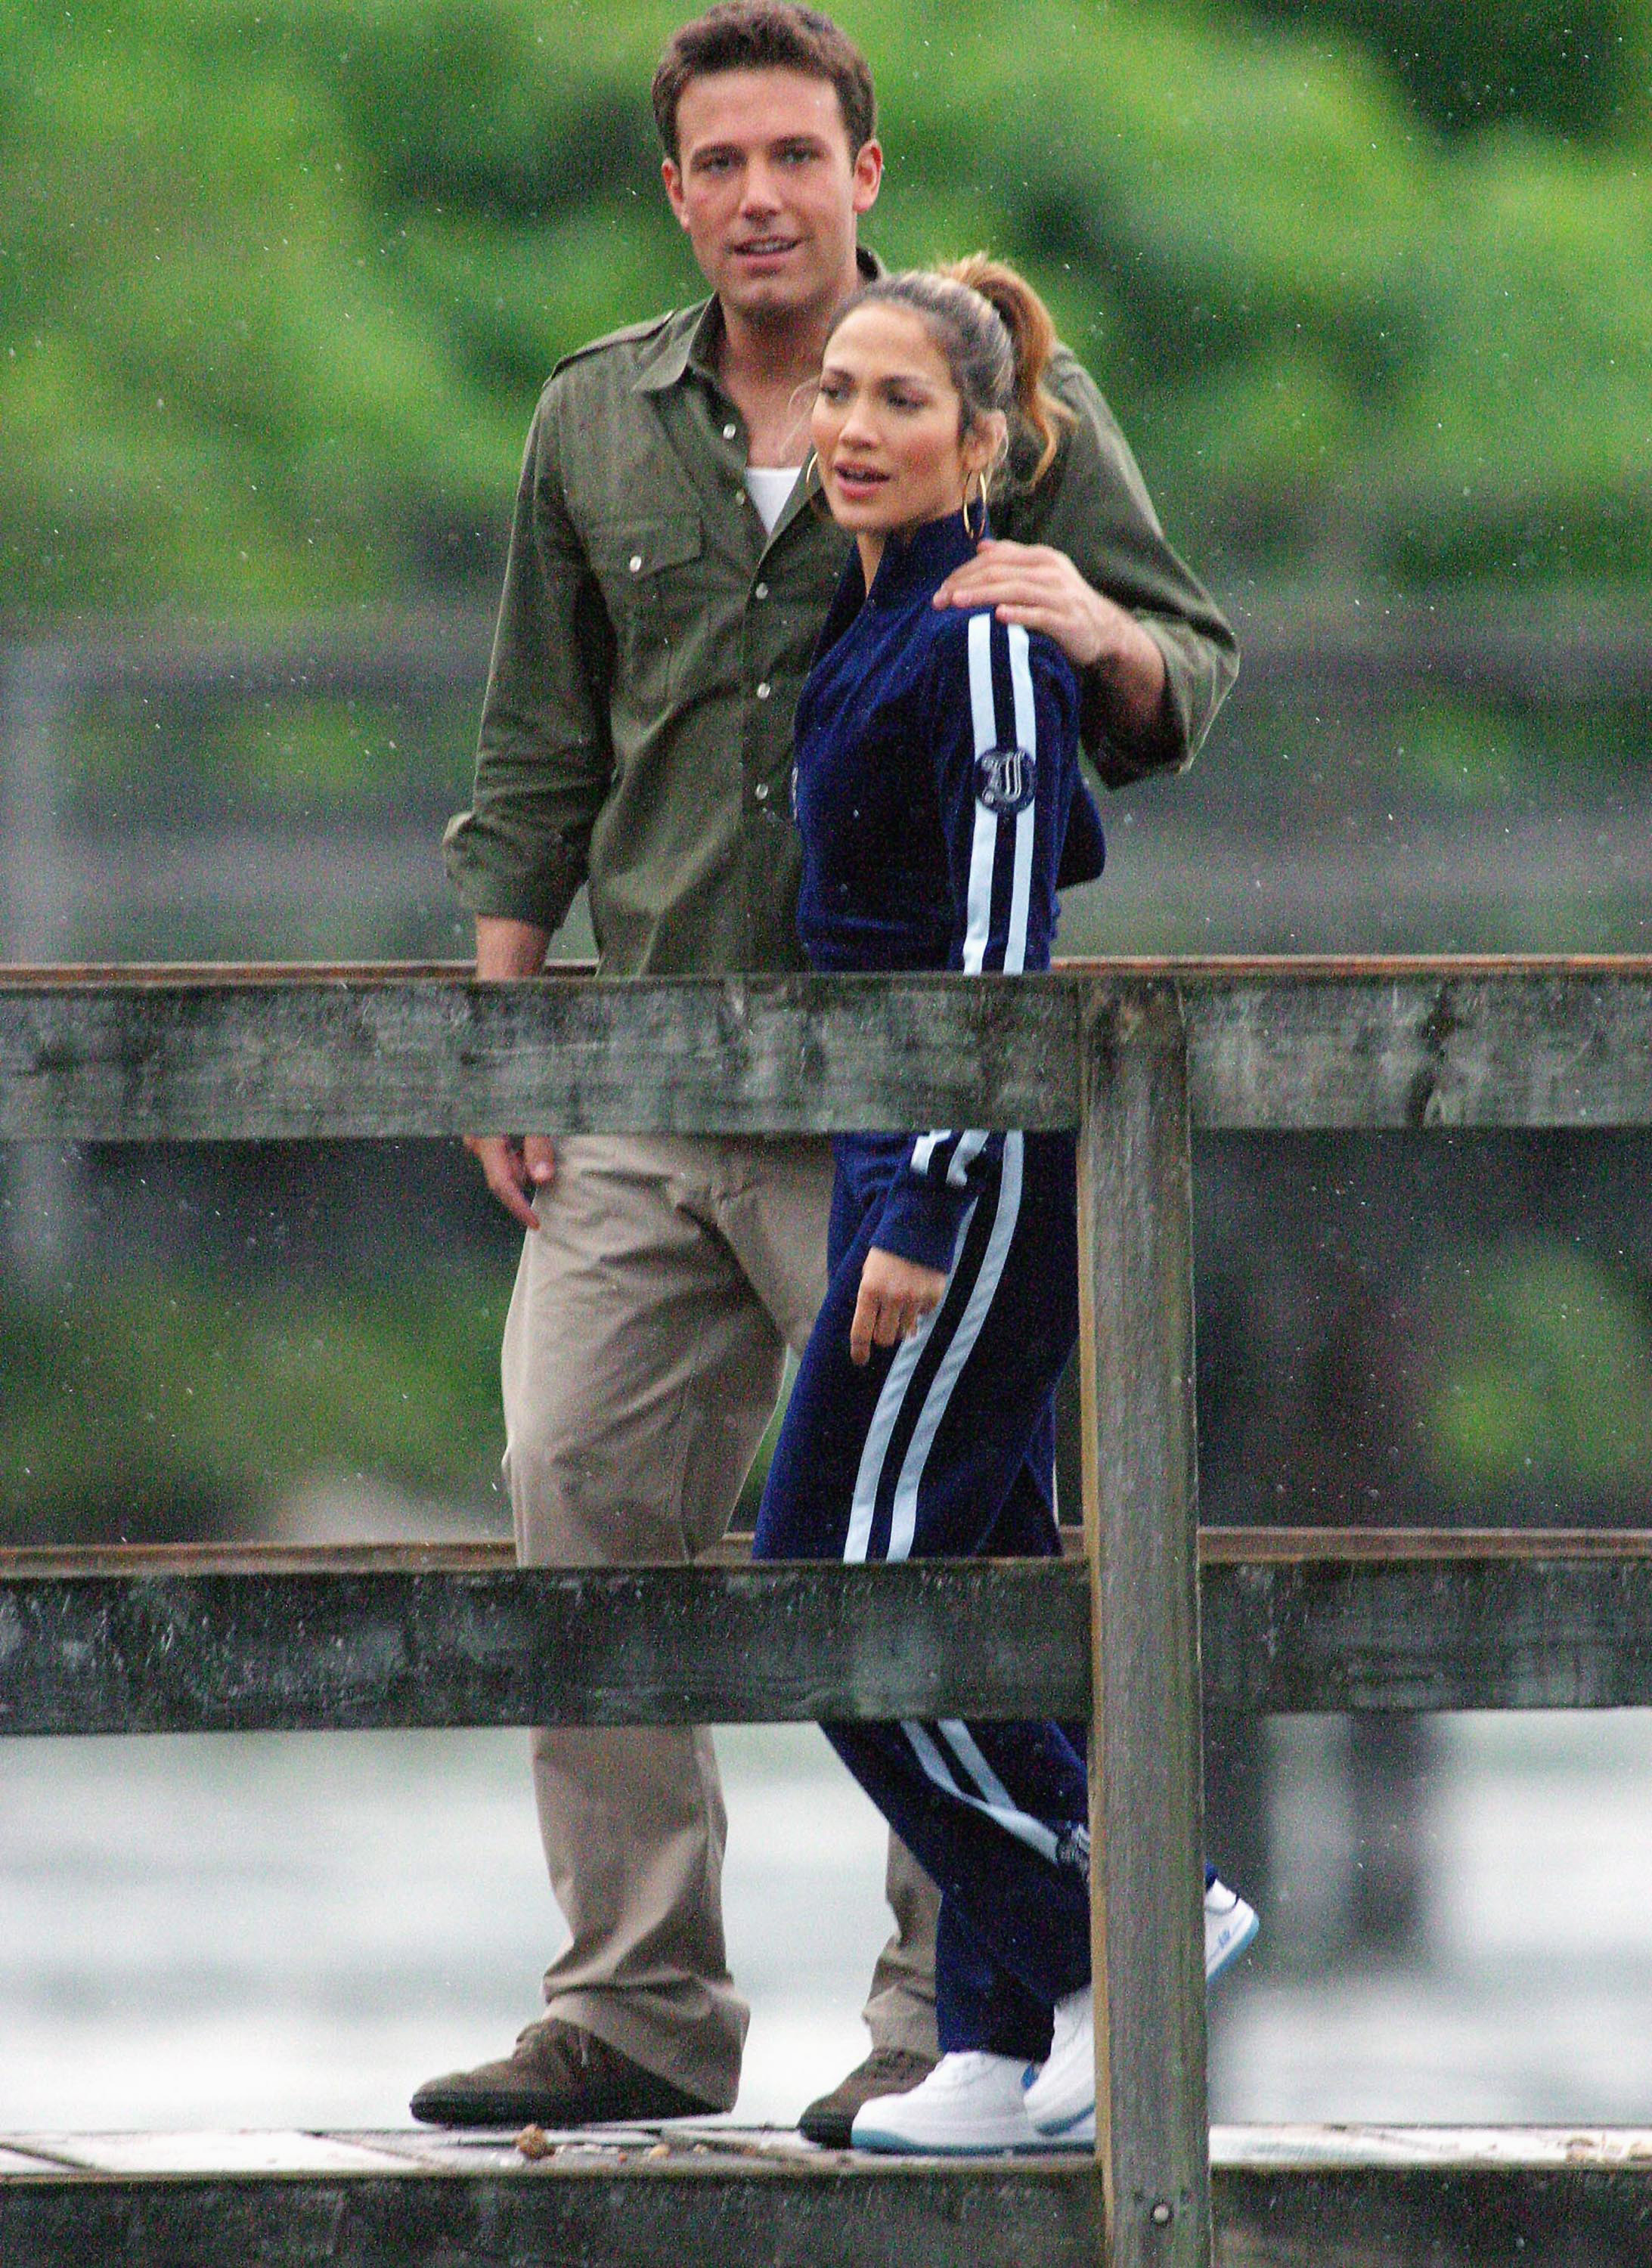 Jennifer Lopez and Ben Affleck on holiday together in Vancouver, Canada, in 2013.